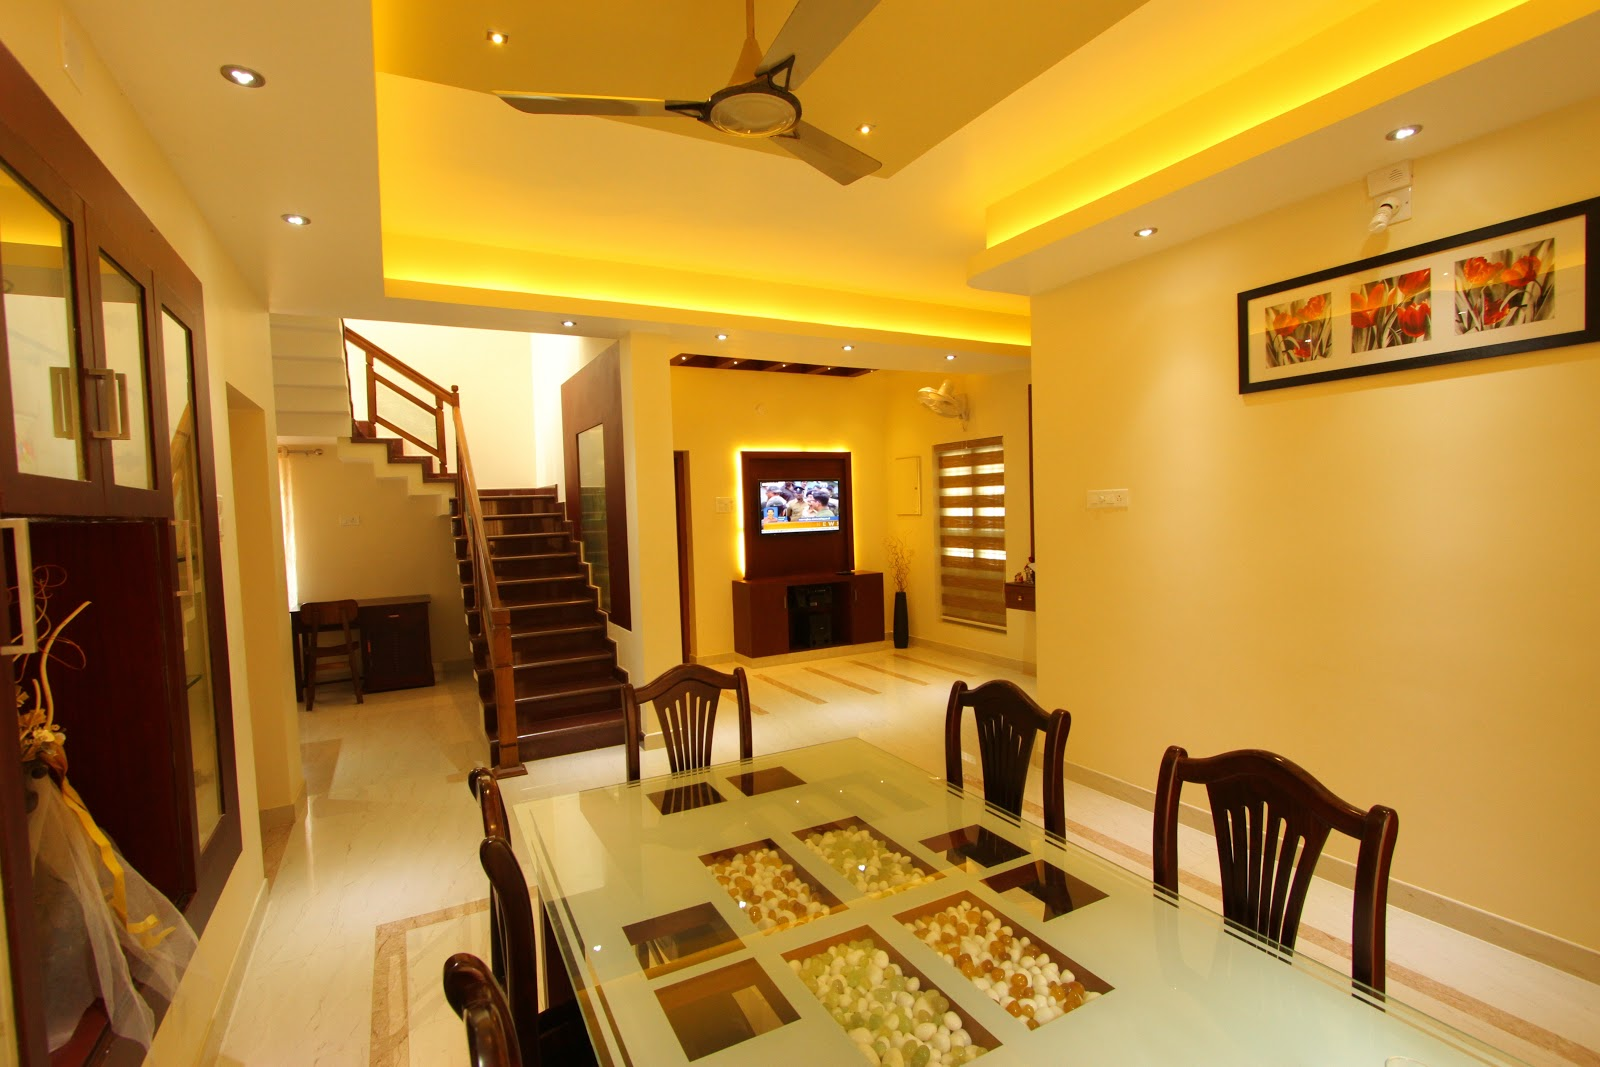 Shilpakala interiors award winning home interior design for Indoor design